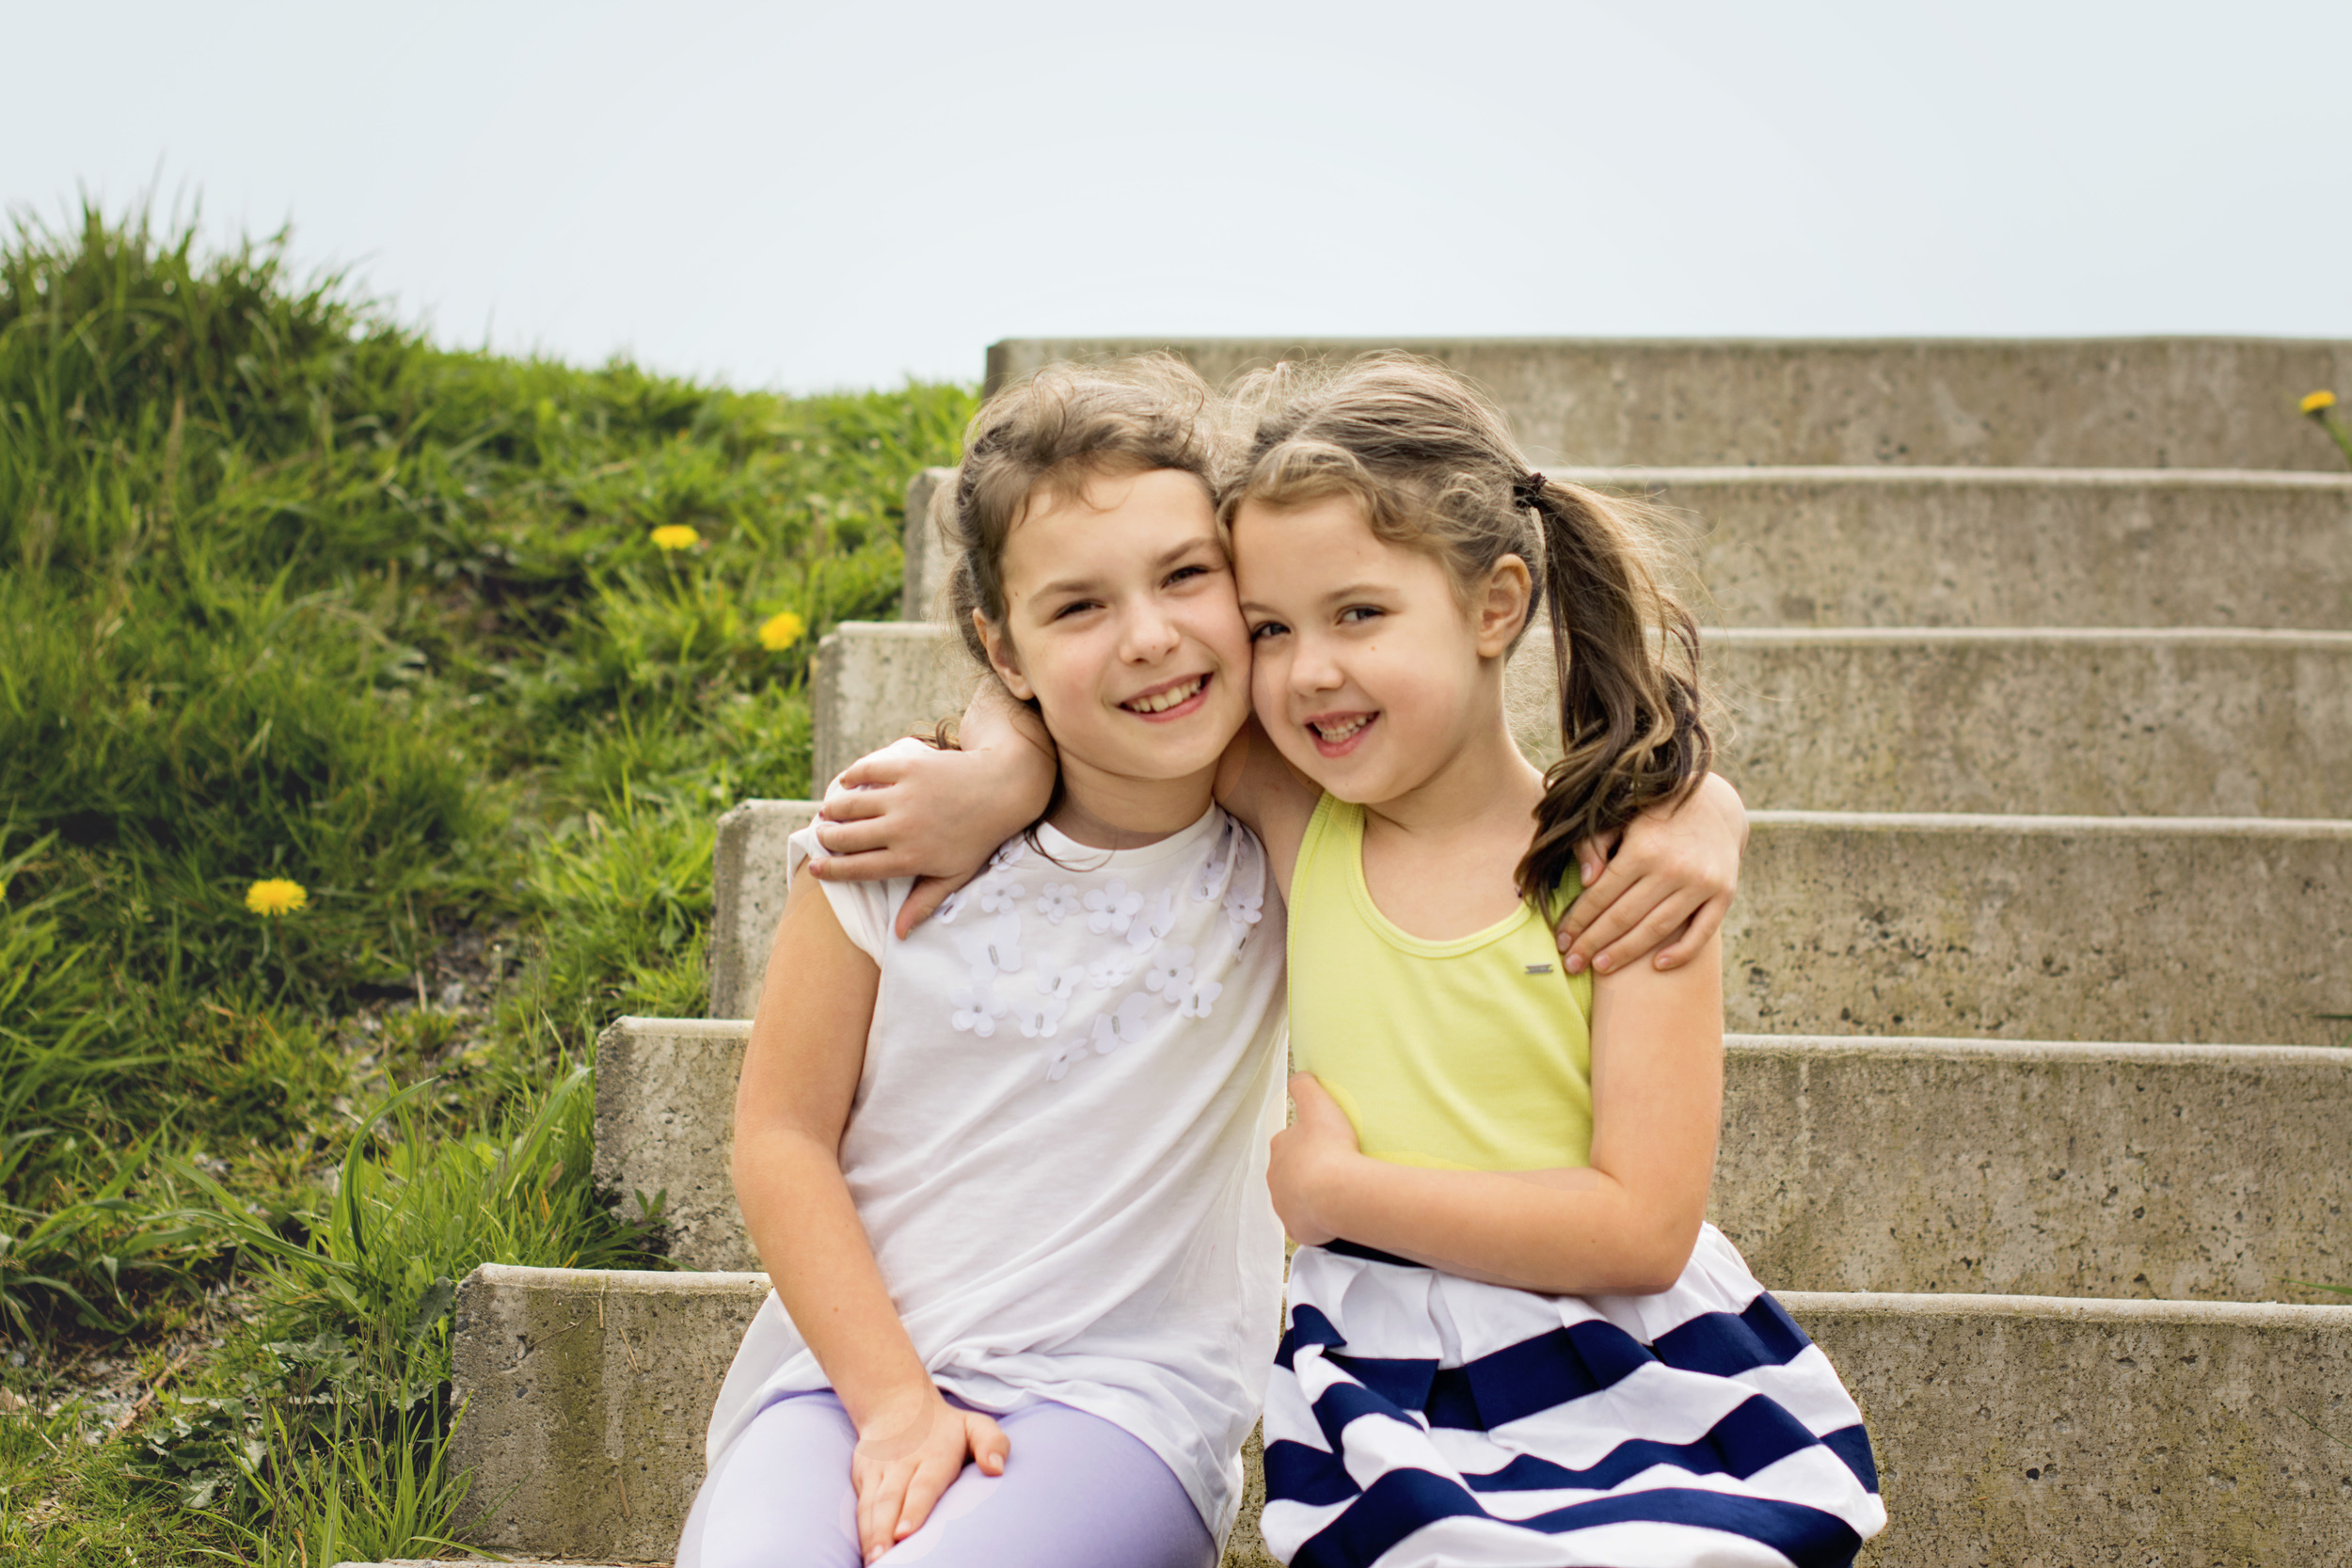 I had so much fun capturing these two sisters, it is so obvious the strong they have and how adorable and goofy they are together! Here's my top fav's for you to take a peak at! Hope you enjoy them as much as I do!